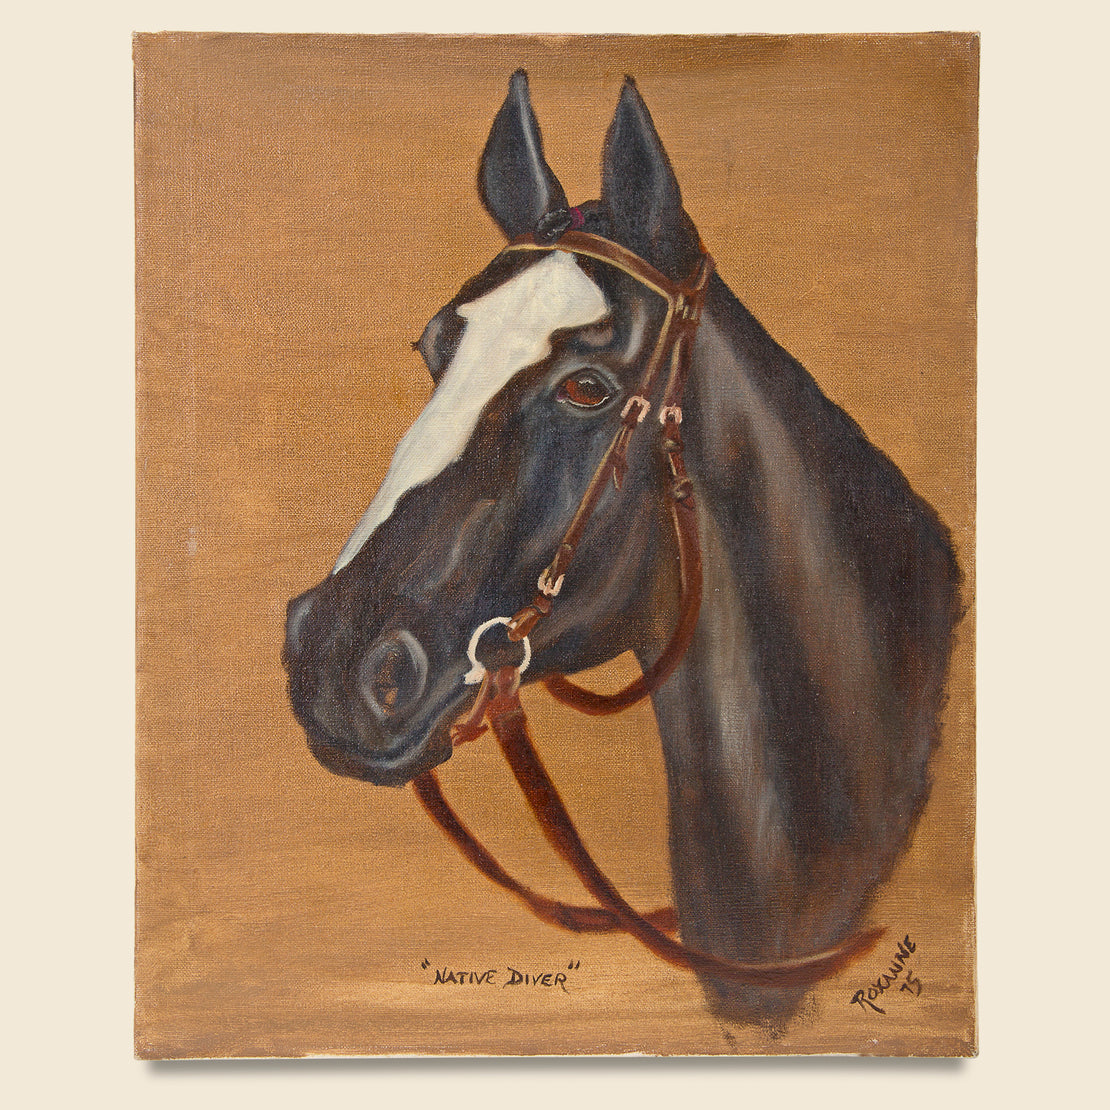 Vintage Native Diver Horse Painting